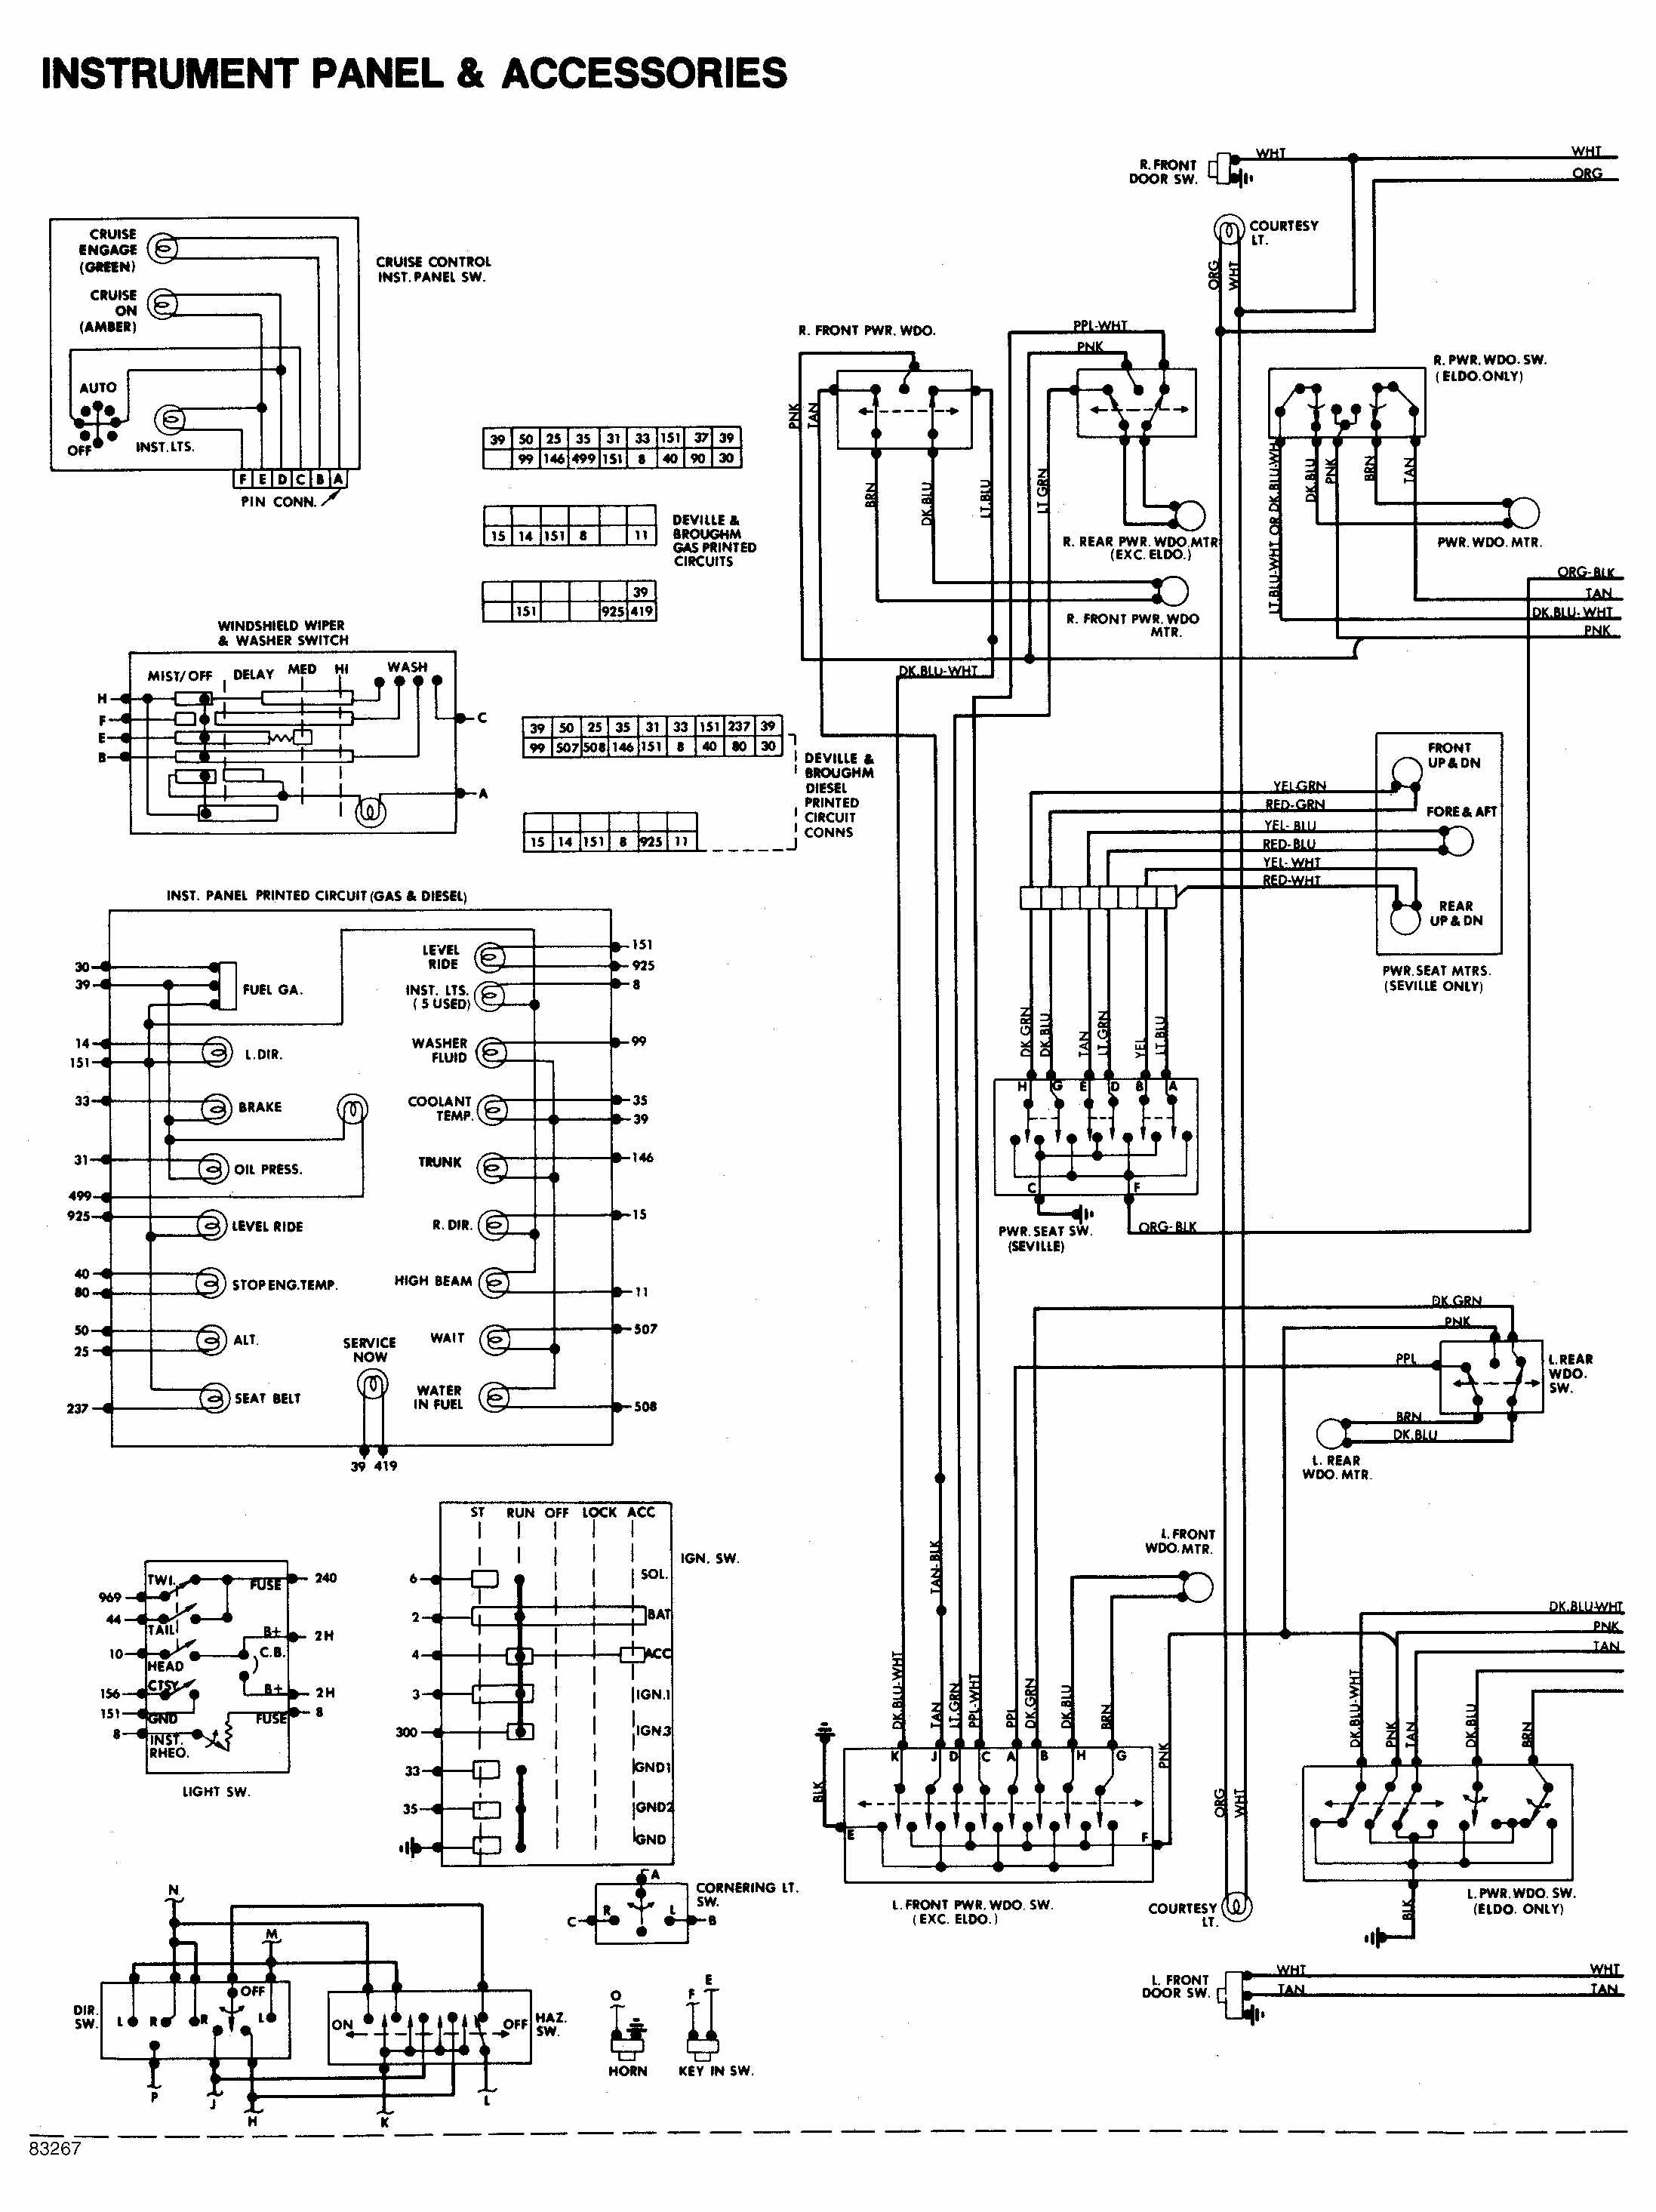 4b0dec ford temperature gauge wiring diagram | wiring library  wiring library